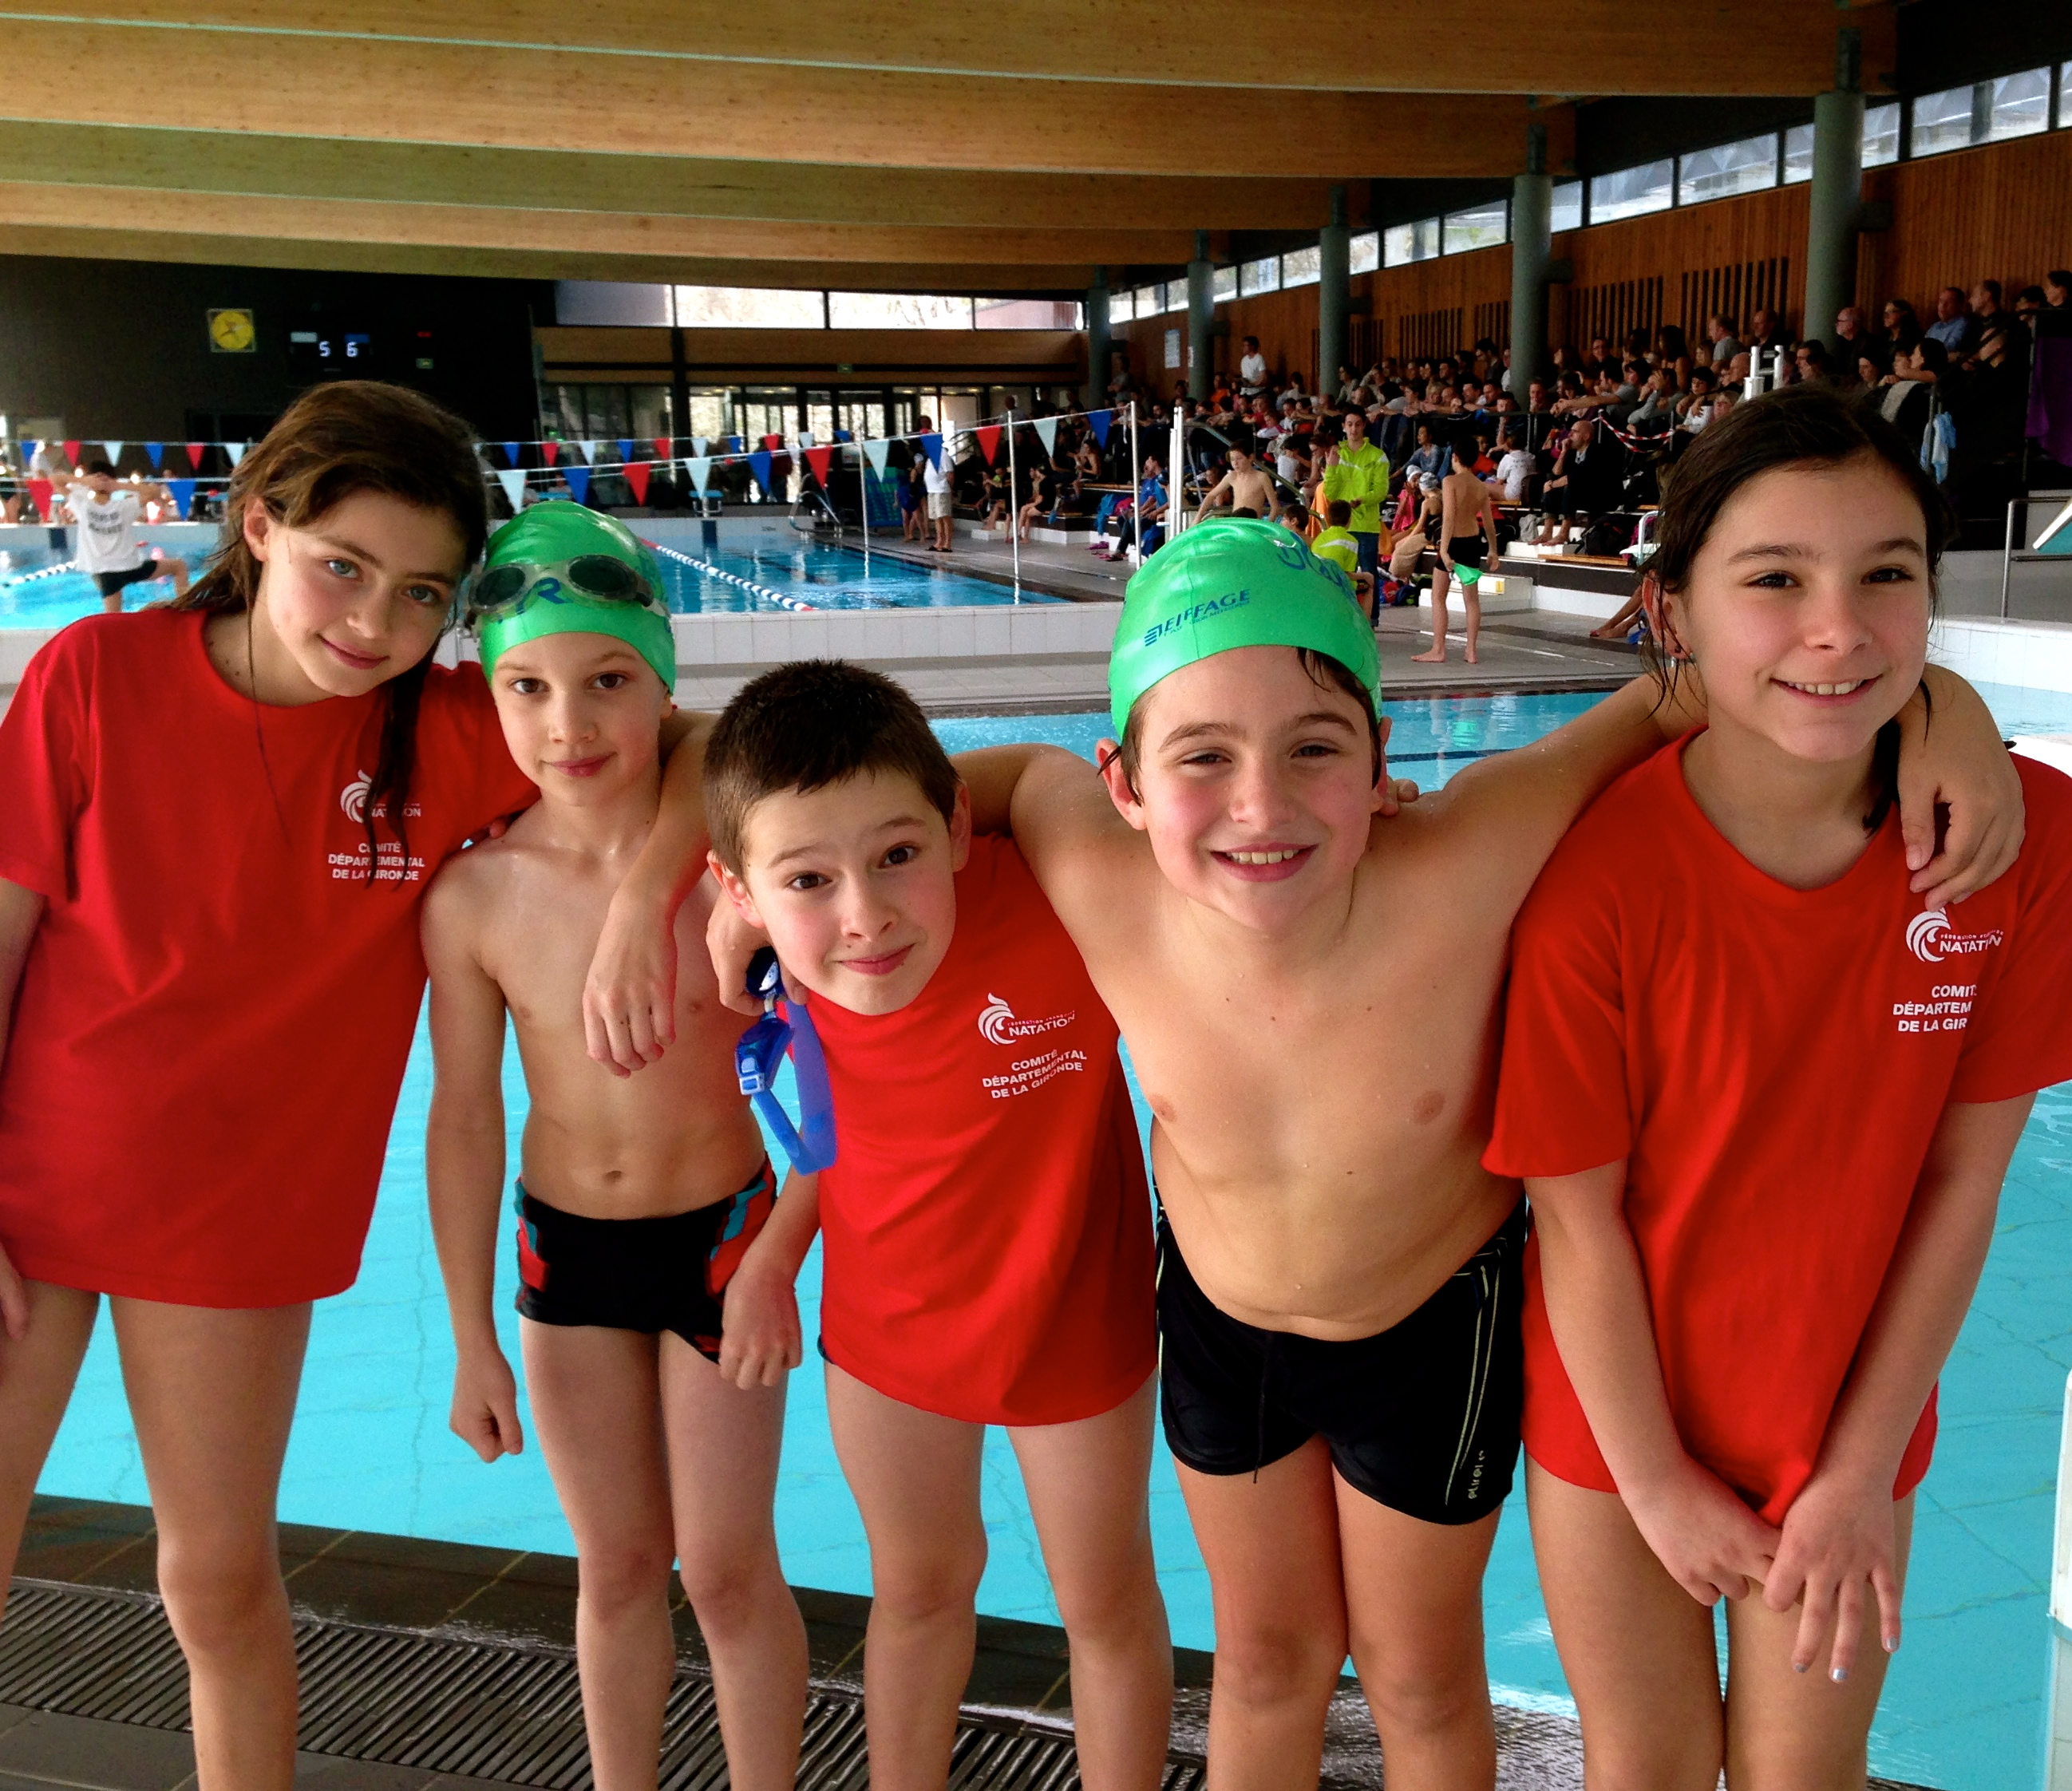 Enf e s blanquefort natation triathlon for Piscine universitaire talence